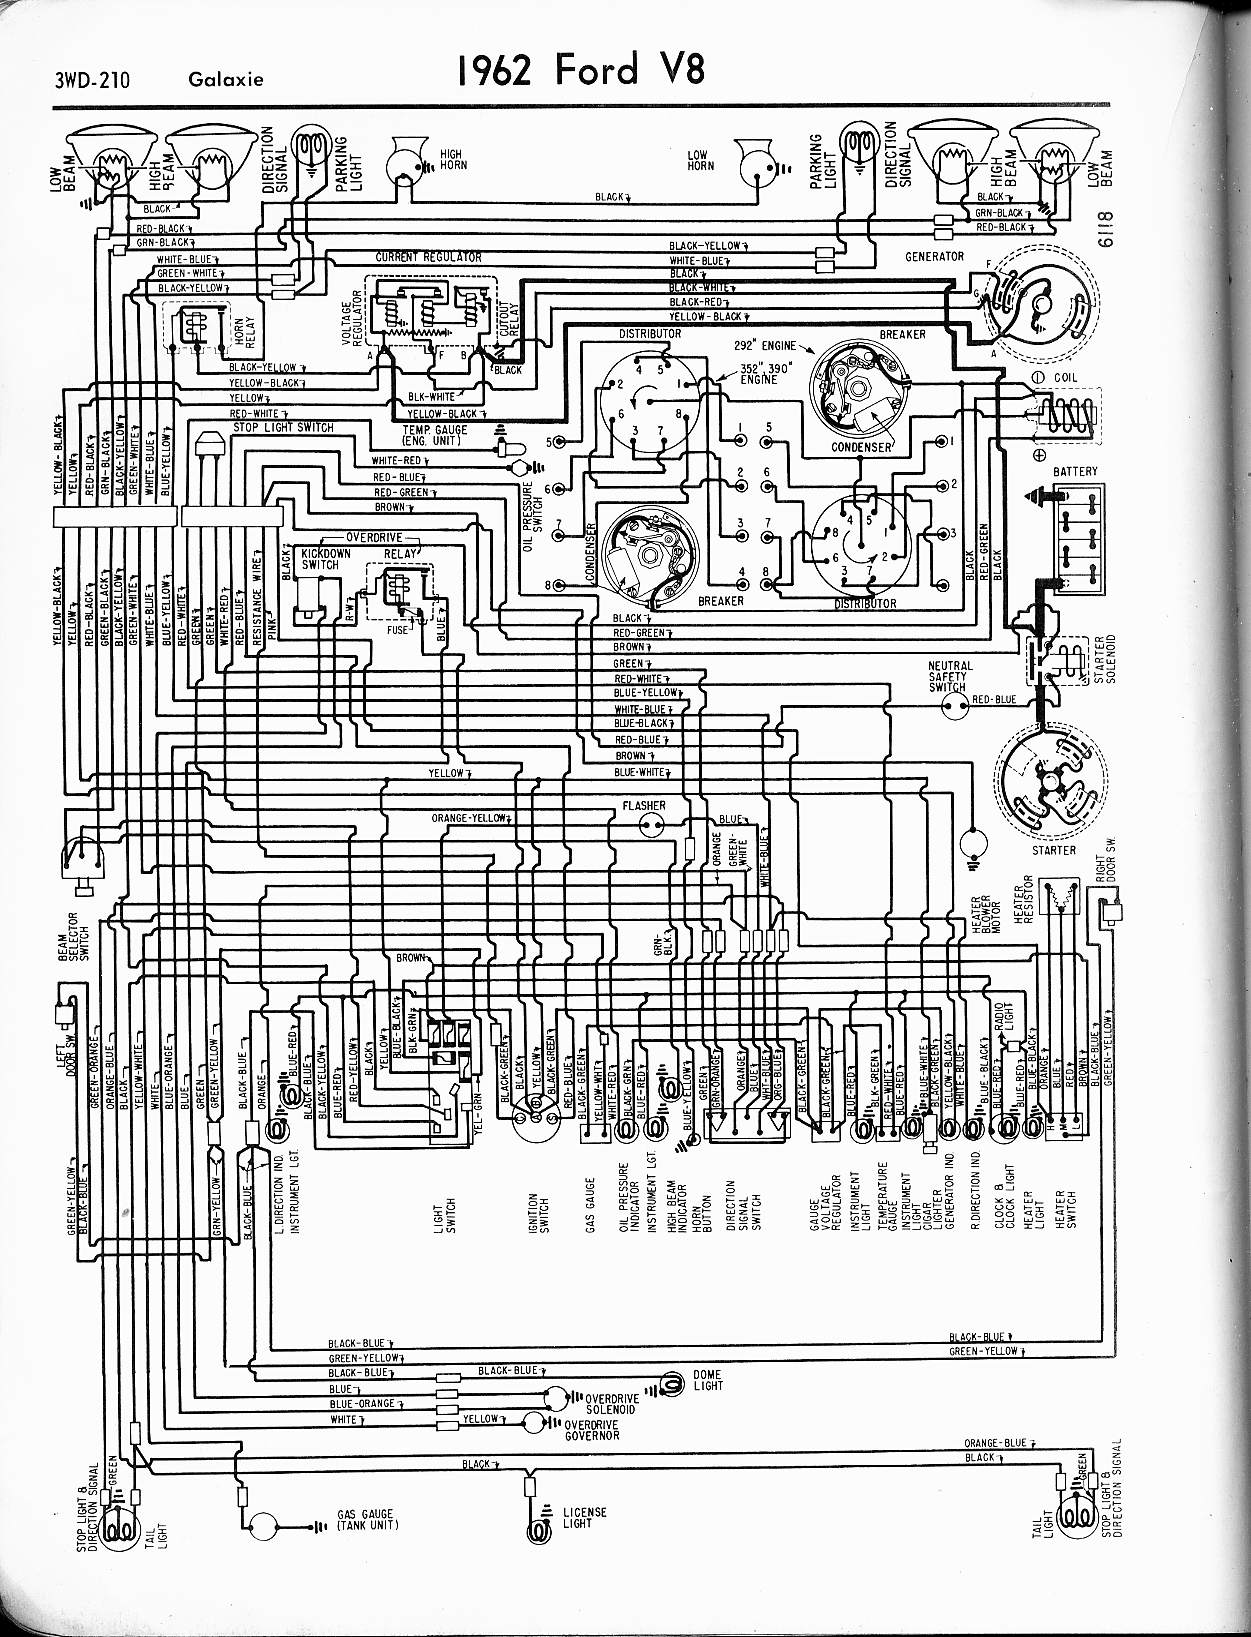 1962 Ford F100 Fuse Box Location Basic Wiring Schematic 2011 Ranger Diagram Truck Schematics